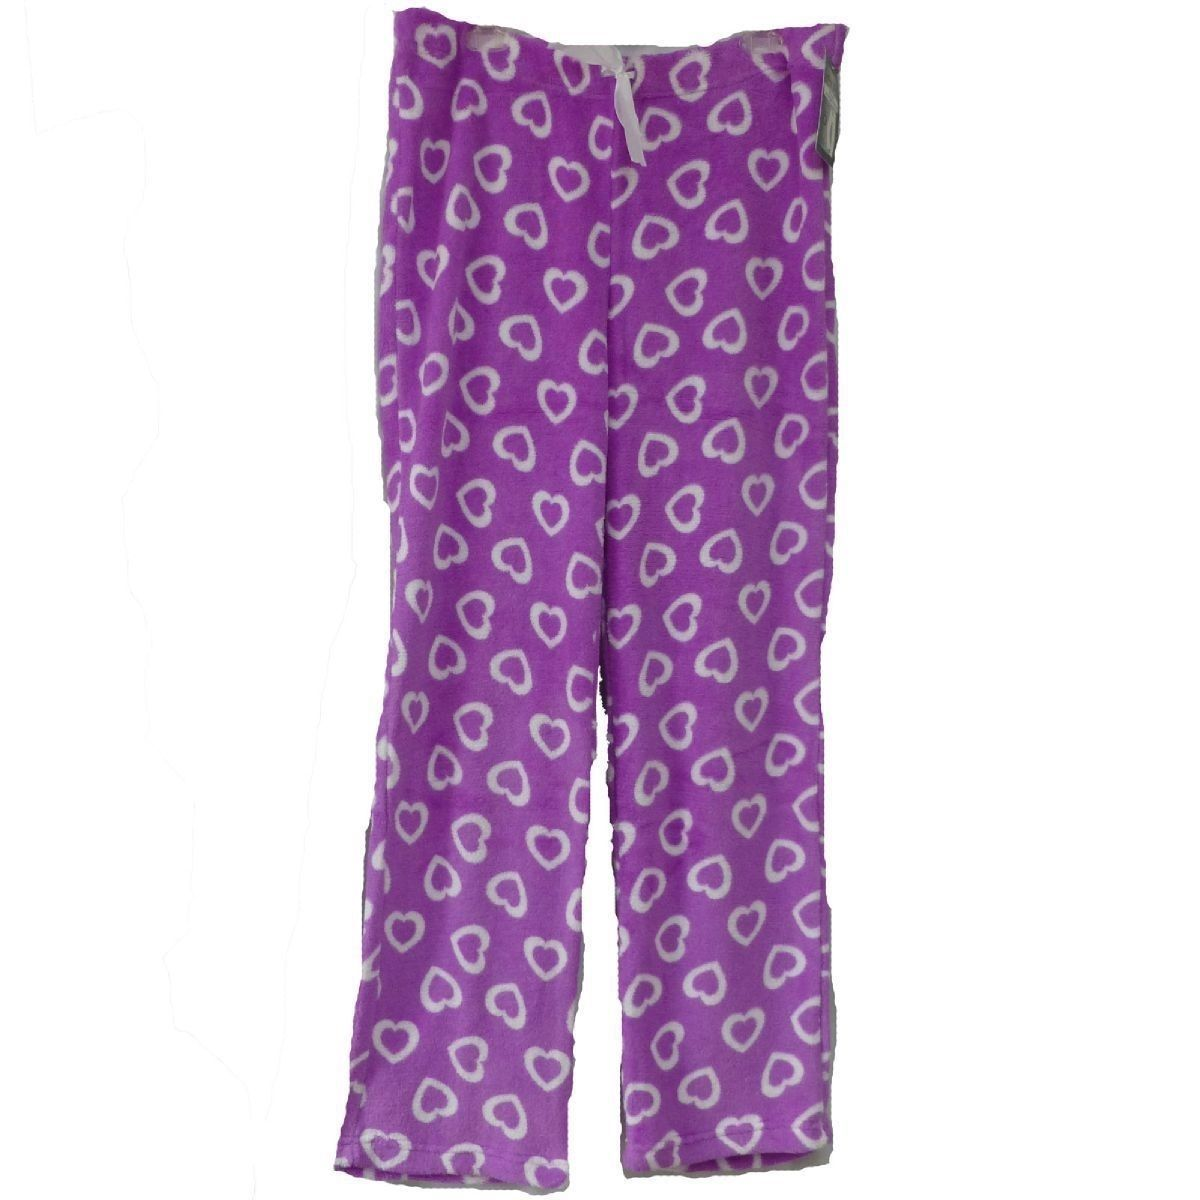 Hotel Spa Collection Plush Lounge Pants